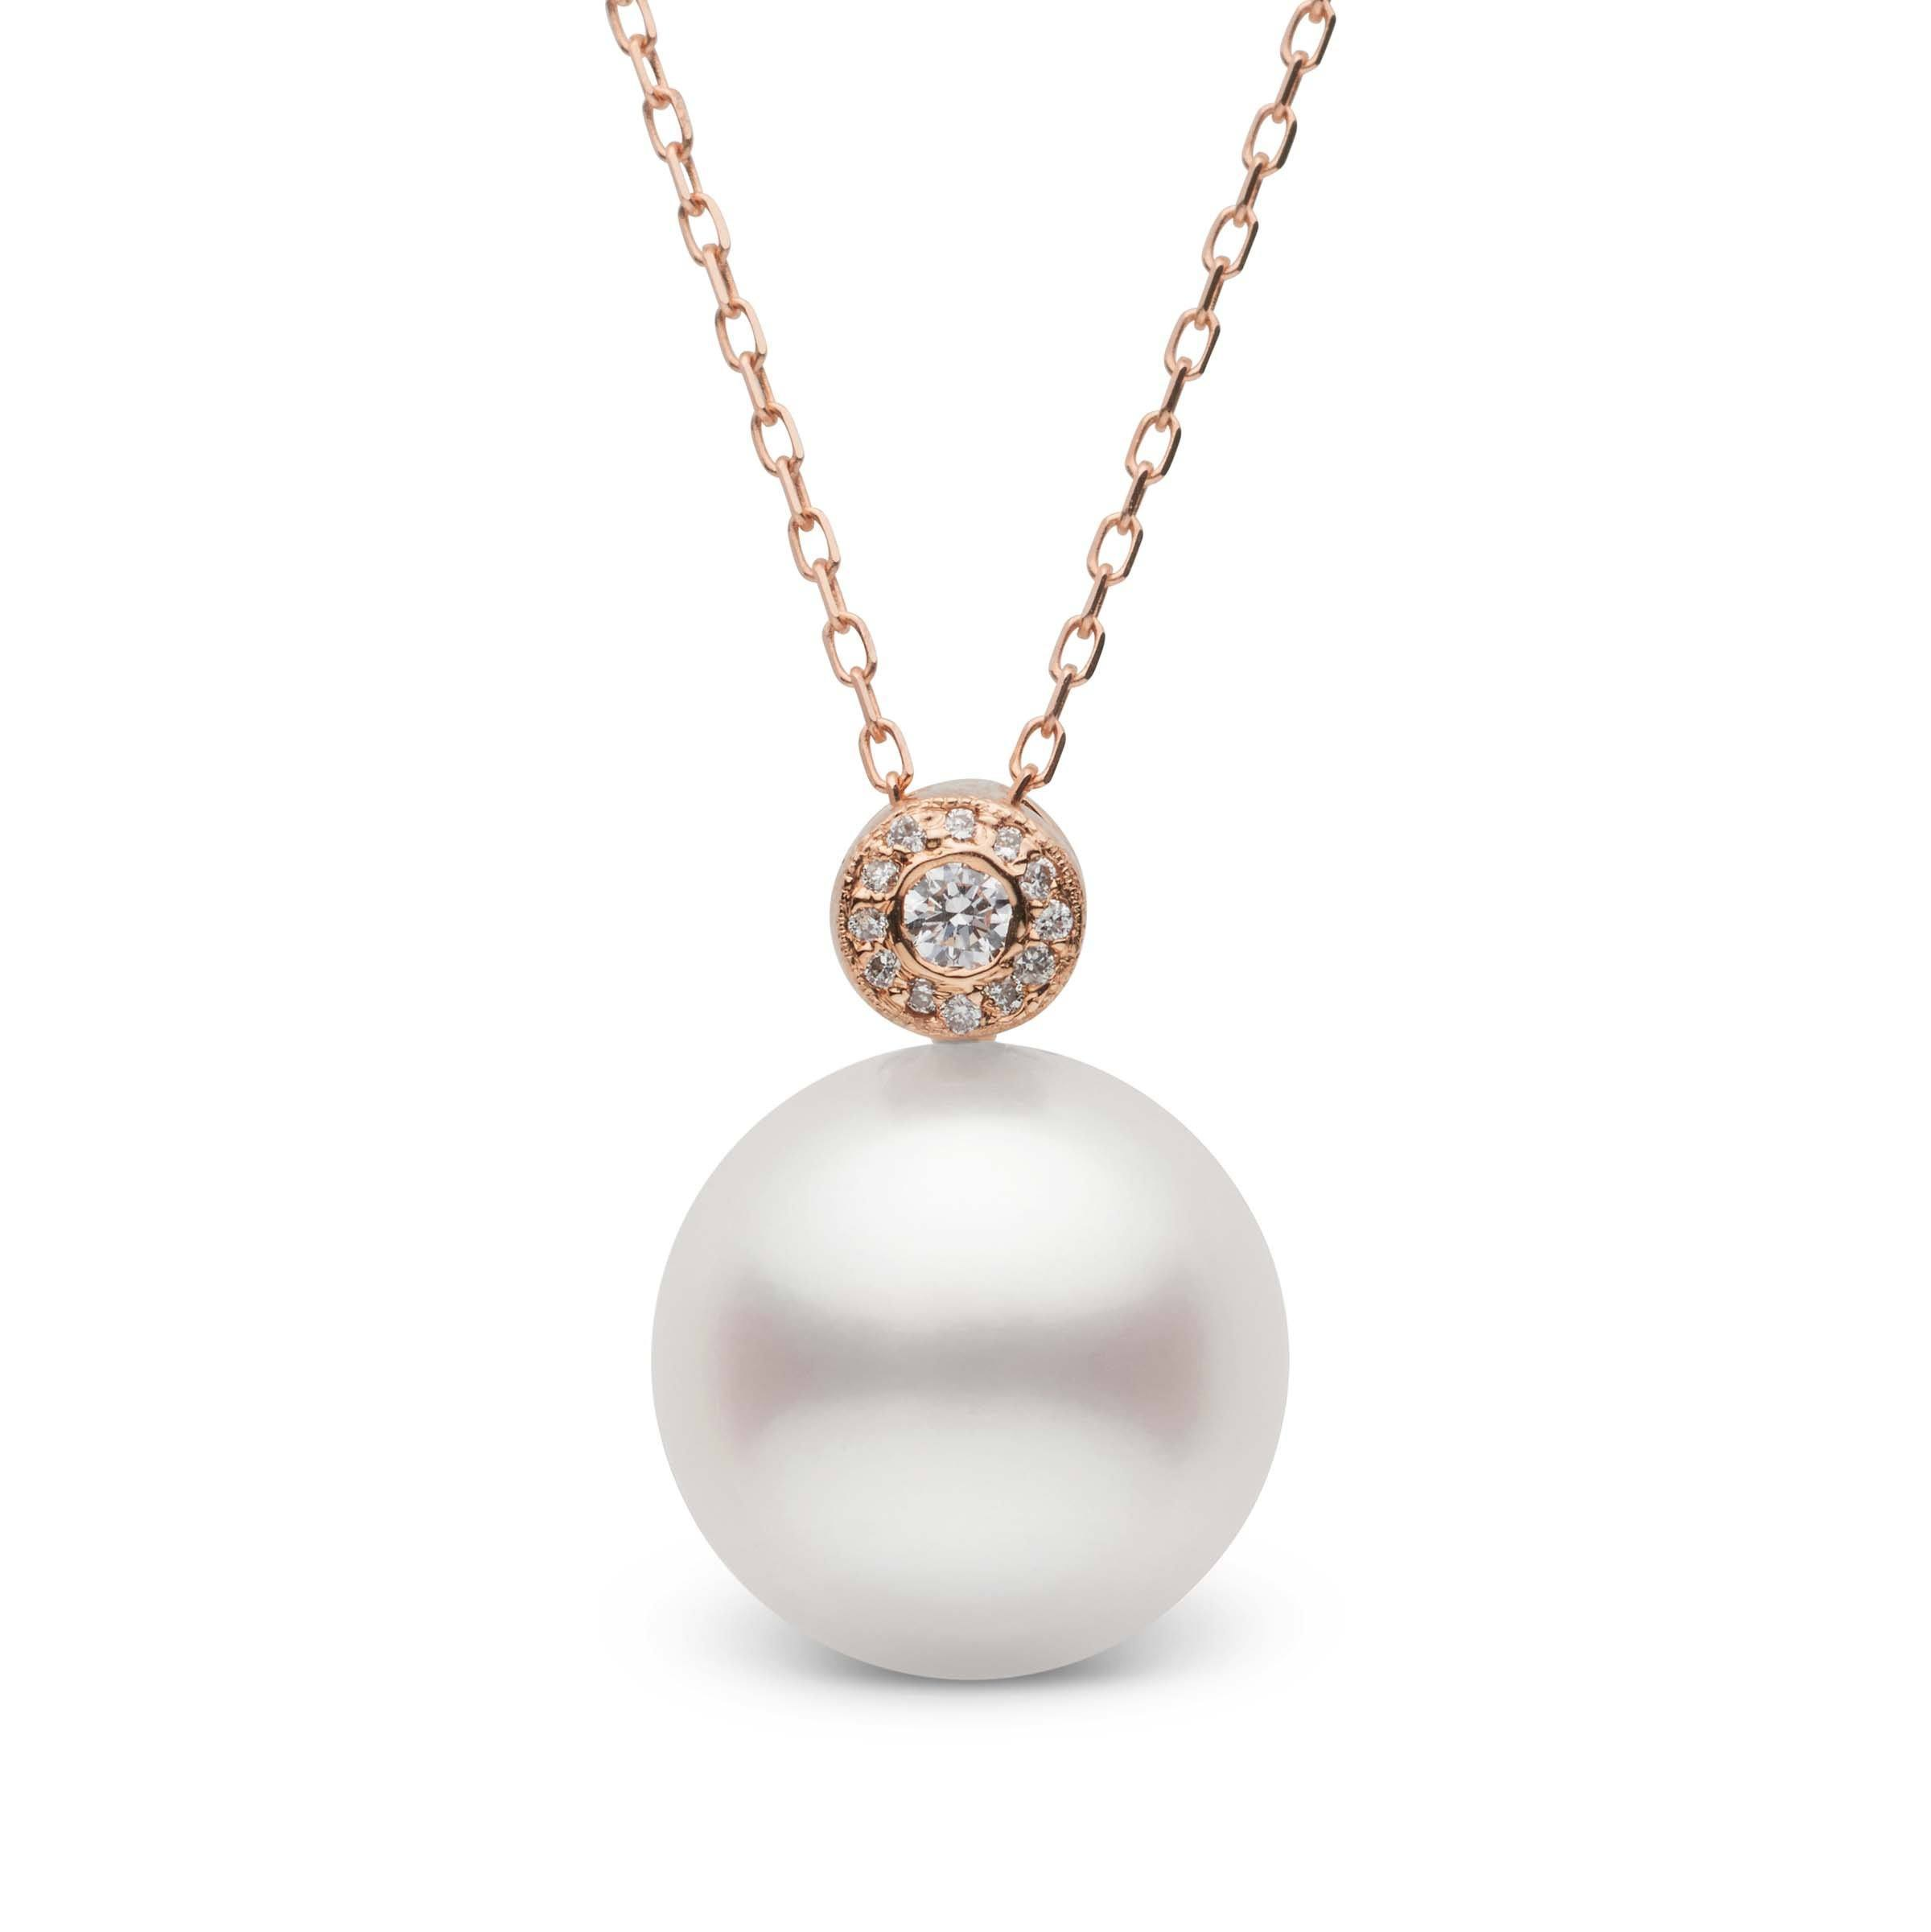 Aura Collection White 12.0-13.0 mm South Sea Pearl and Diamond Pendant